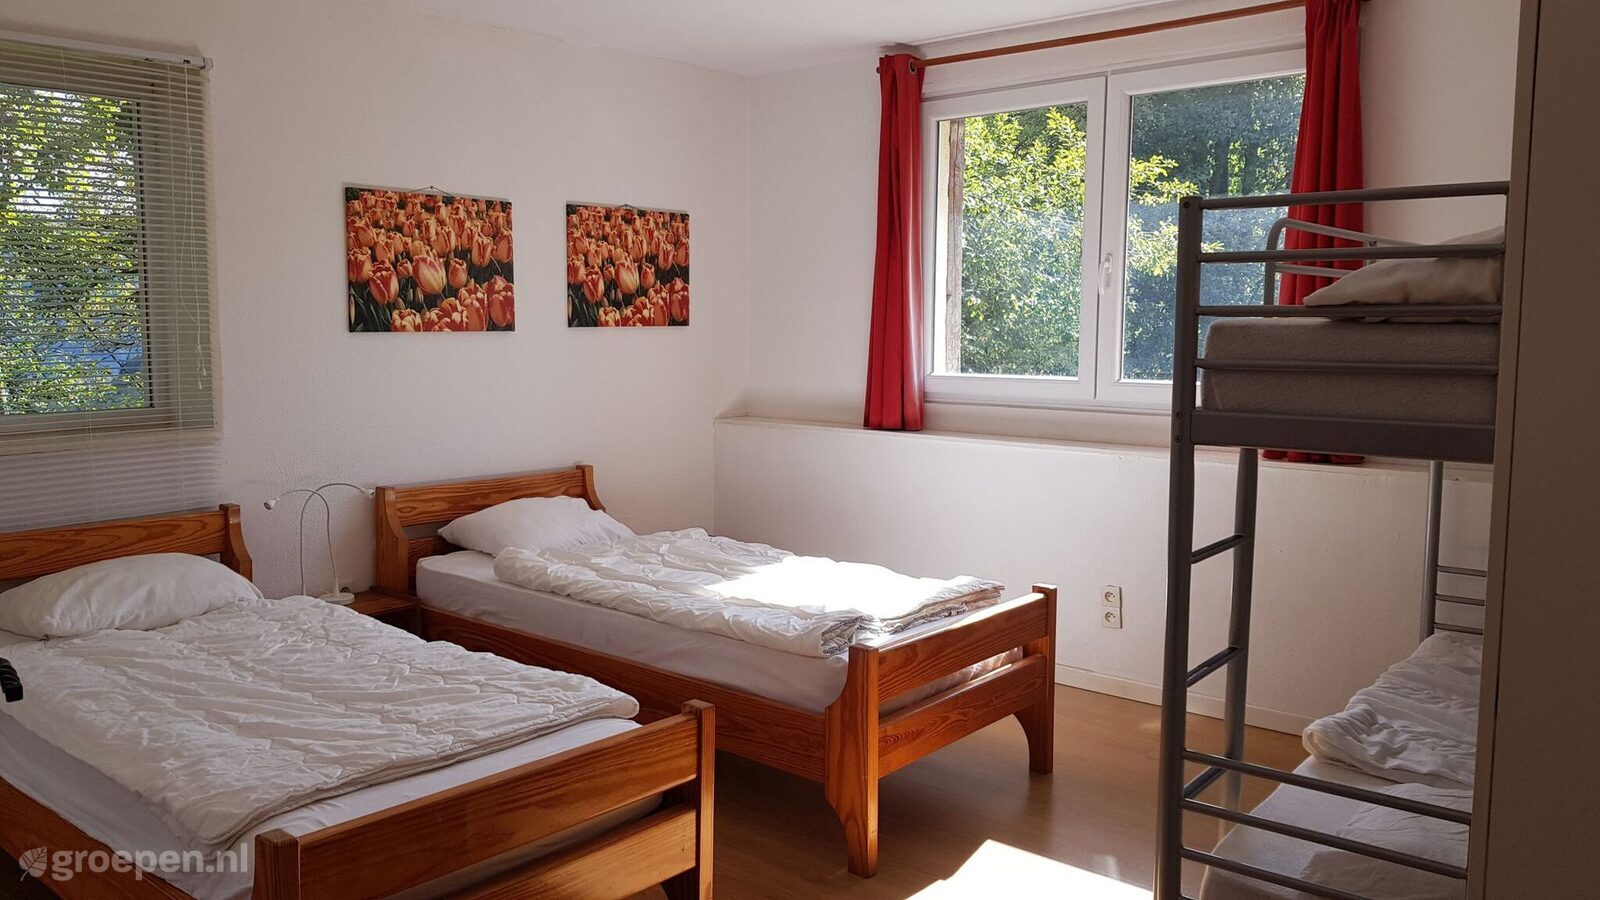 Group accommodation Ban sur Meurthe